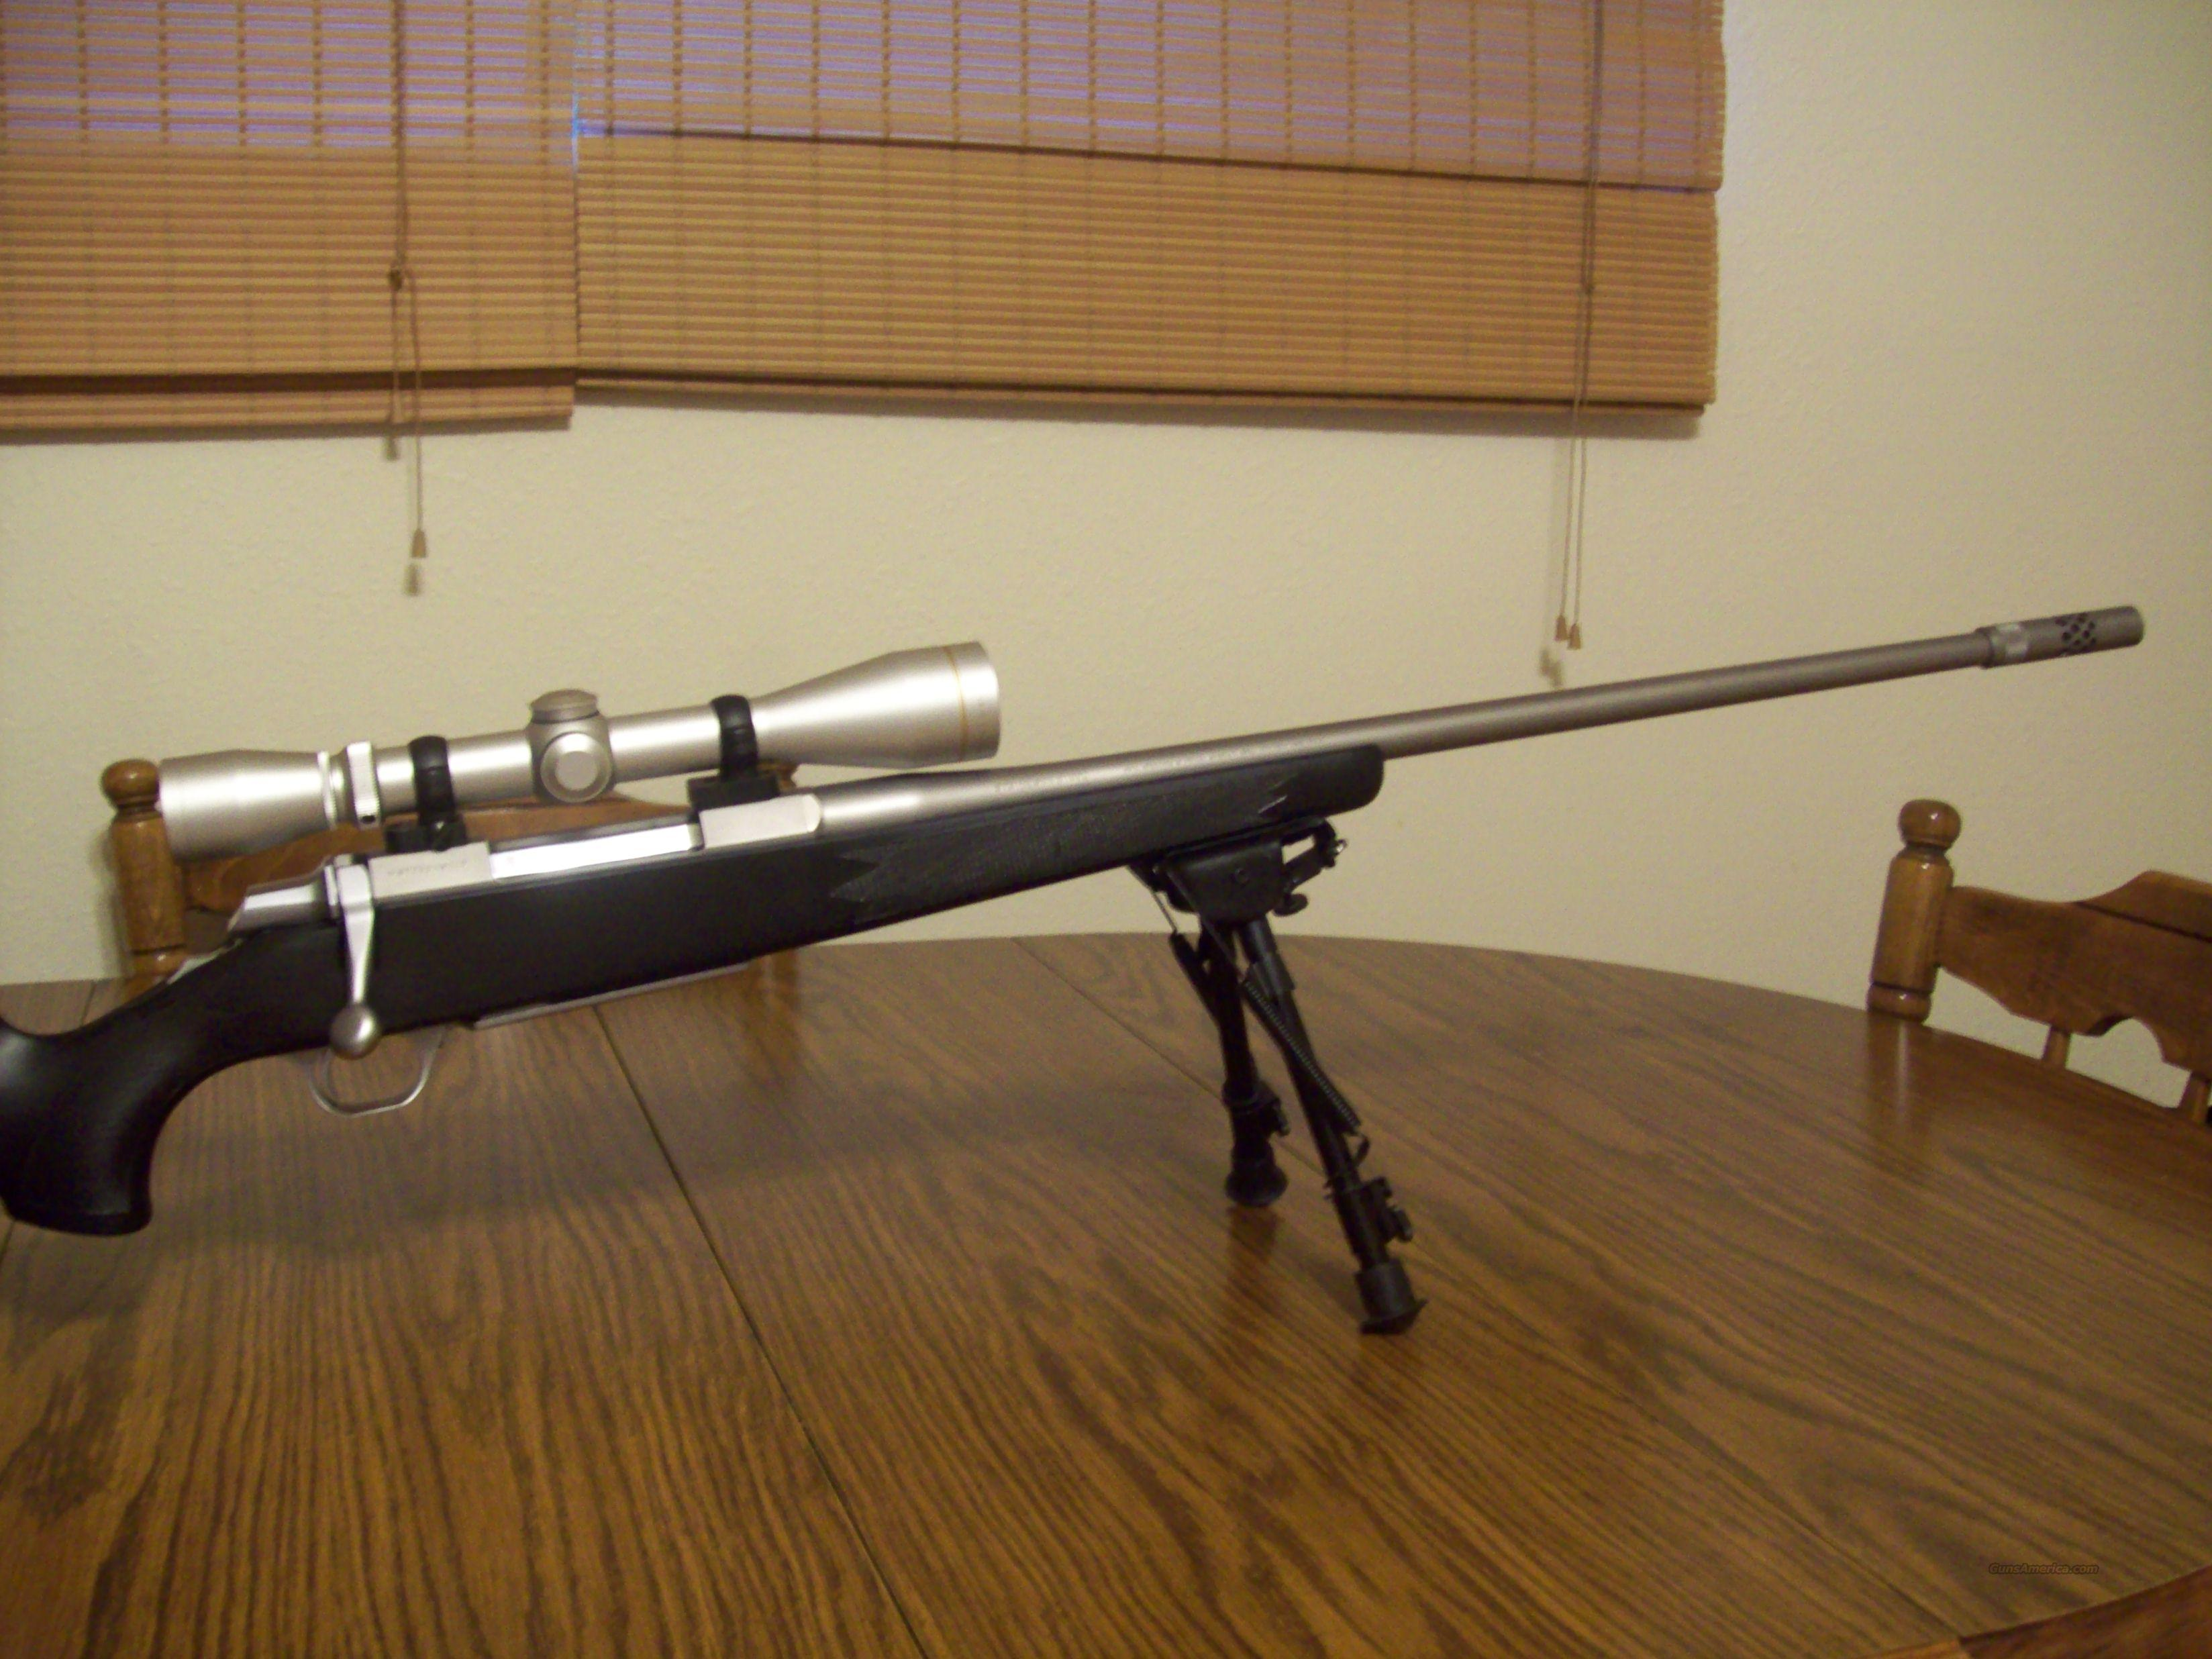 SS A BOLT 7MM MAG WITH BOSS AND VX2 SS LEUPOLD 3-9  Guns > Rifles > Browning Rifles > Bolt Action > Hunting > Stainless